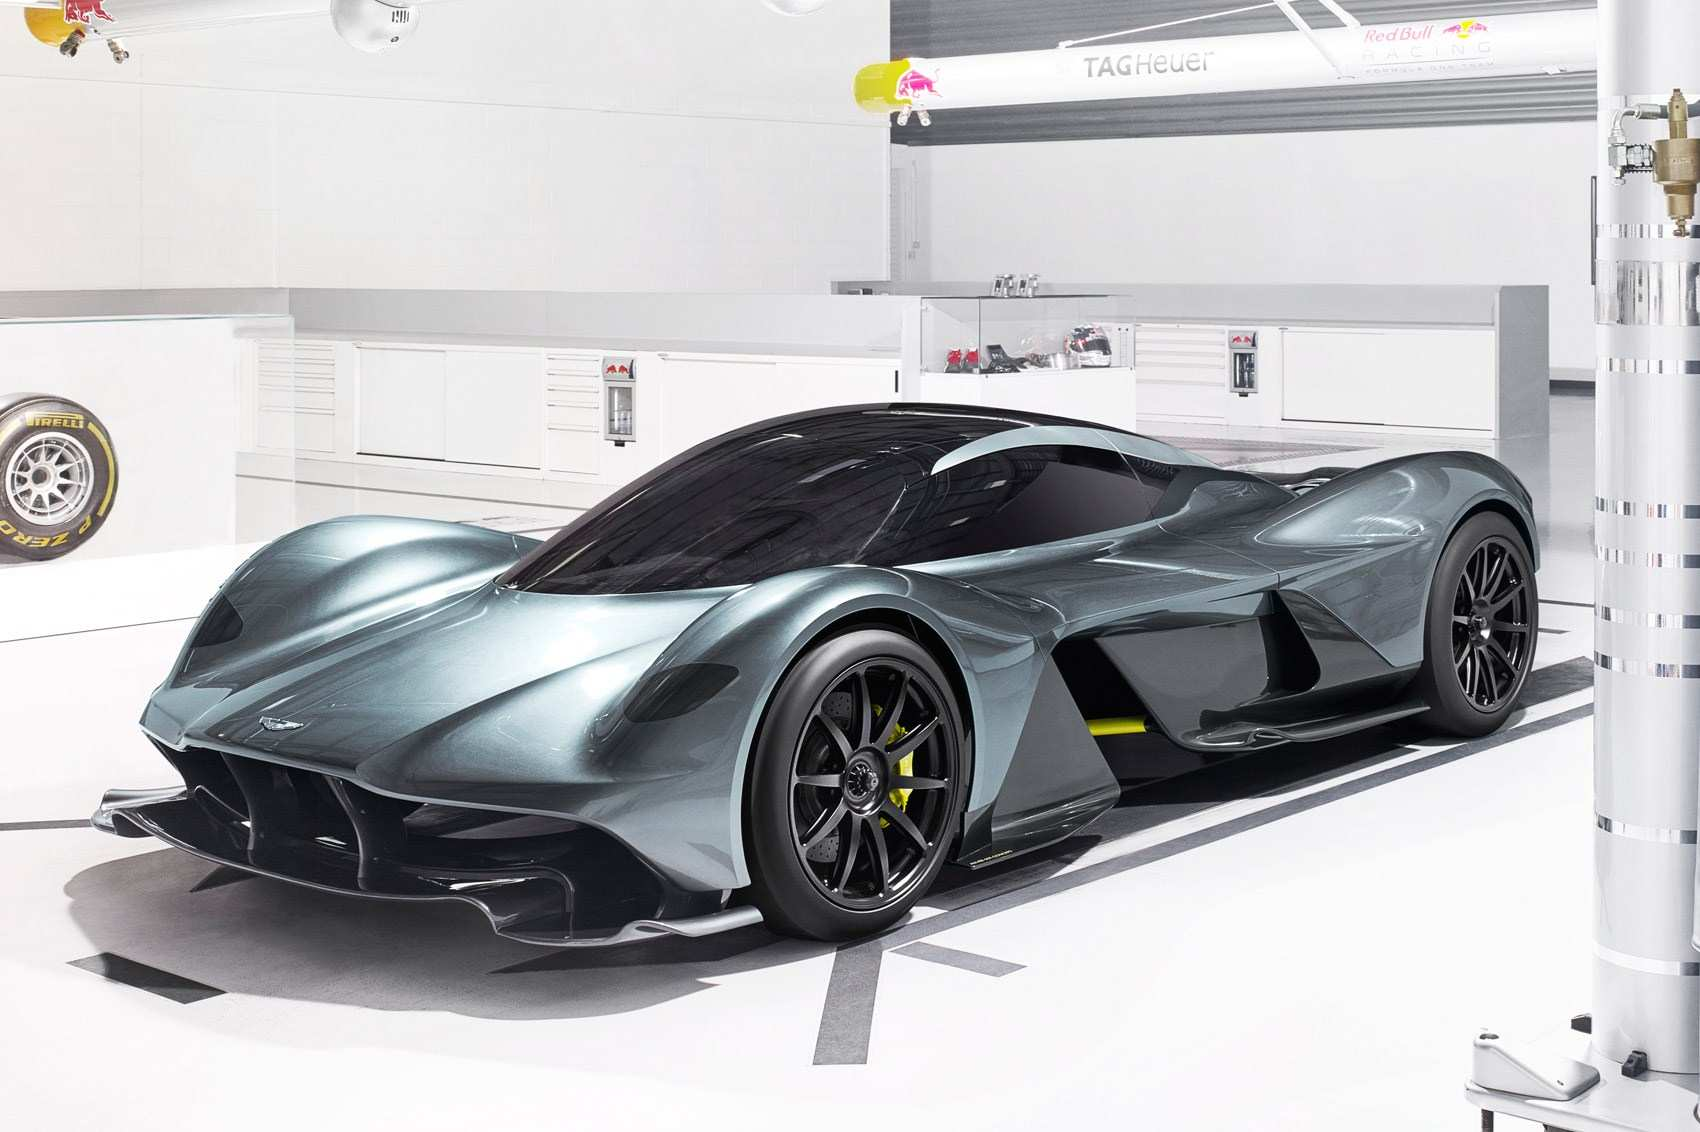 85 The 2019 Aston Martin Red Bull Exterior and Interior for 2019 Aston Martin Red Bull